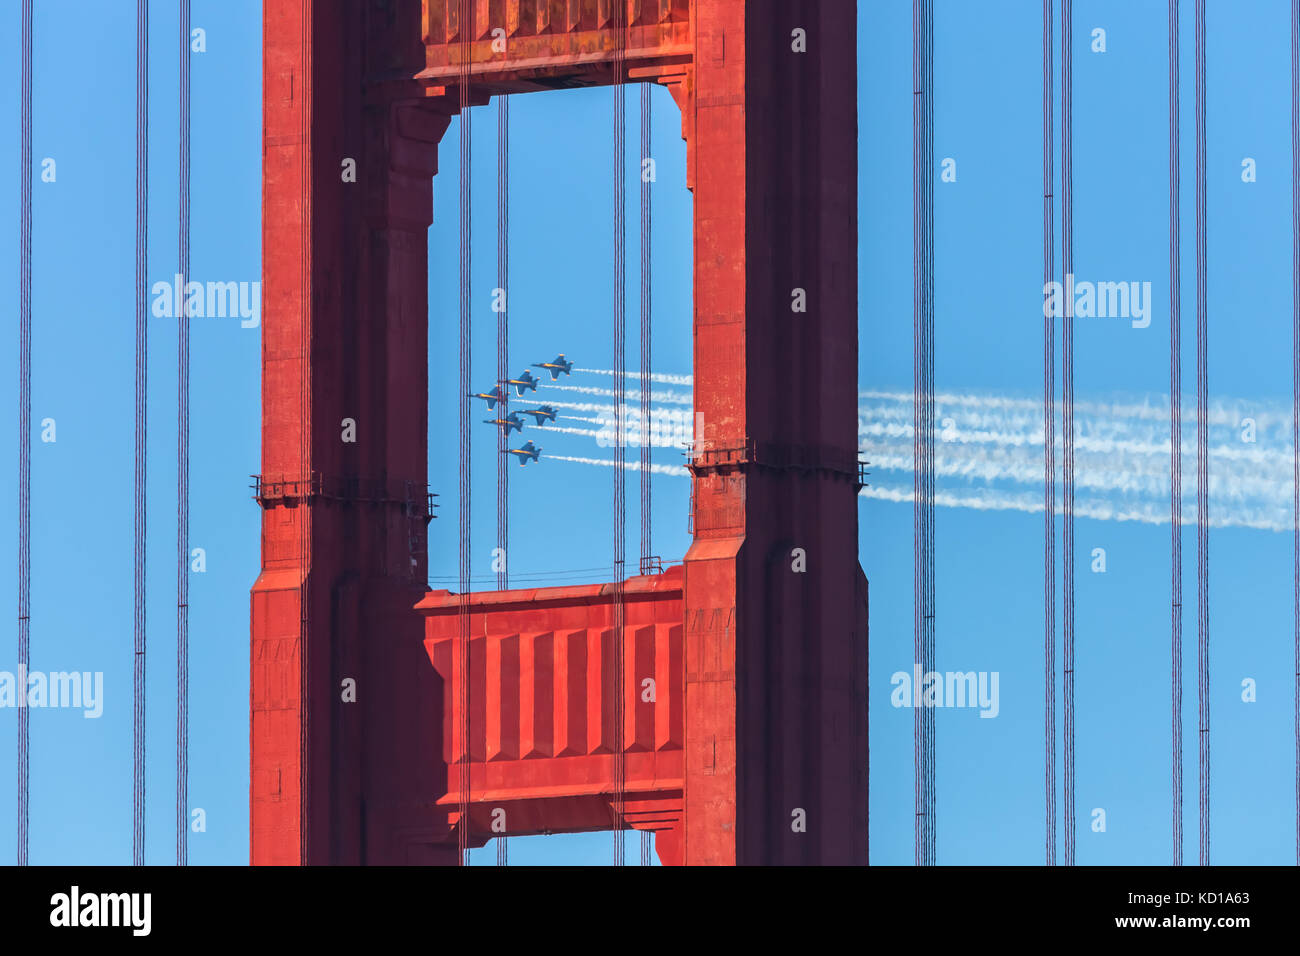 The United States Navy airplanes, The Blue Angles, fly over the Golden Gate Bridge during the airshow performance Stock Photo